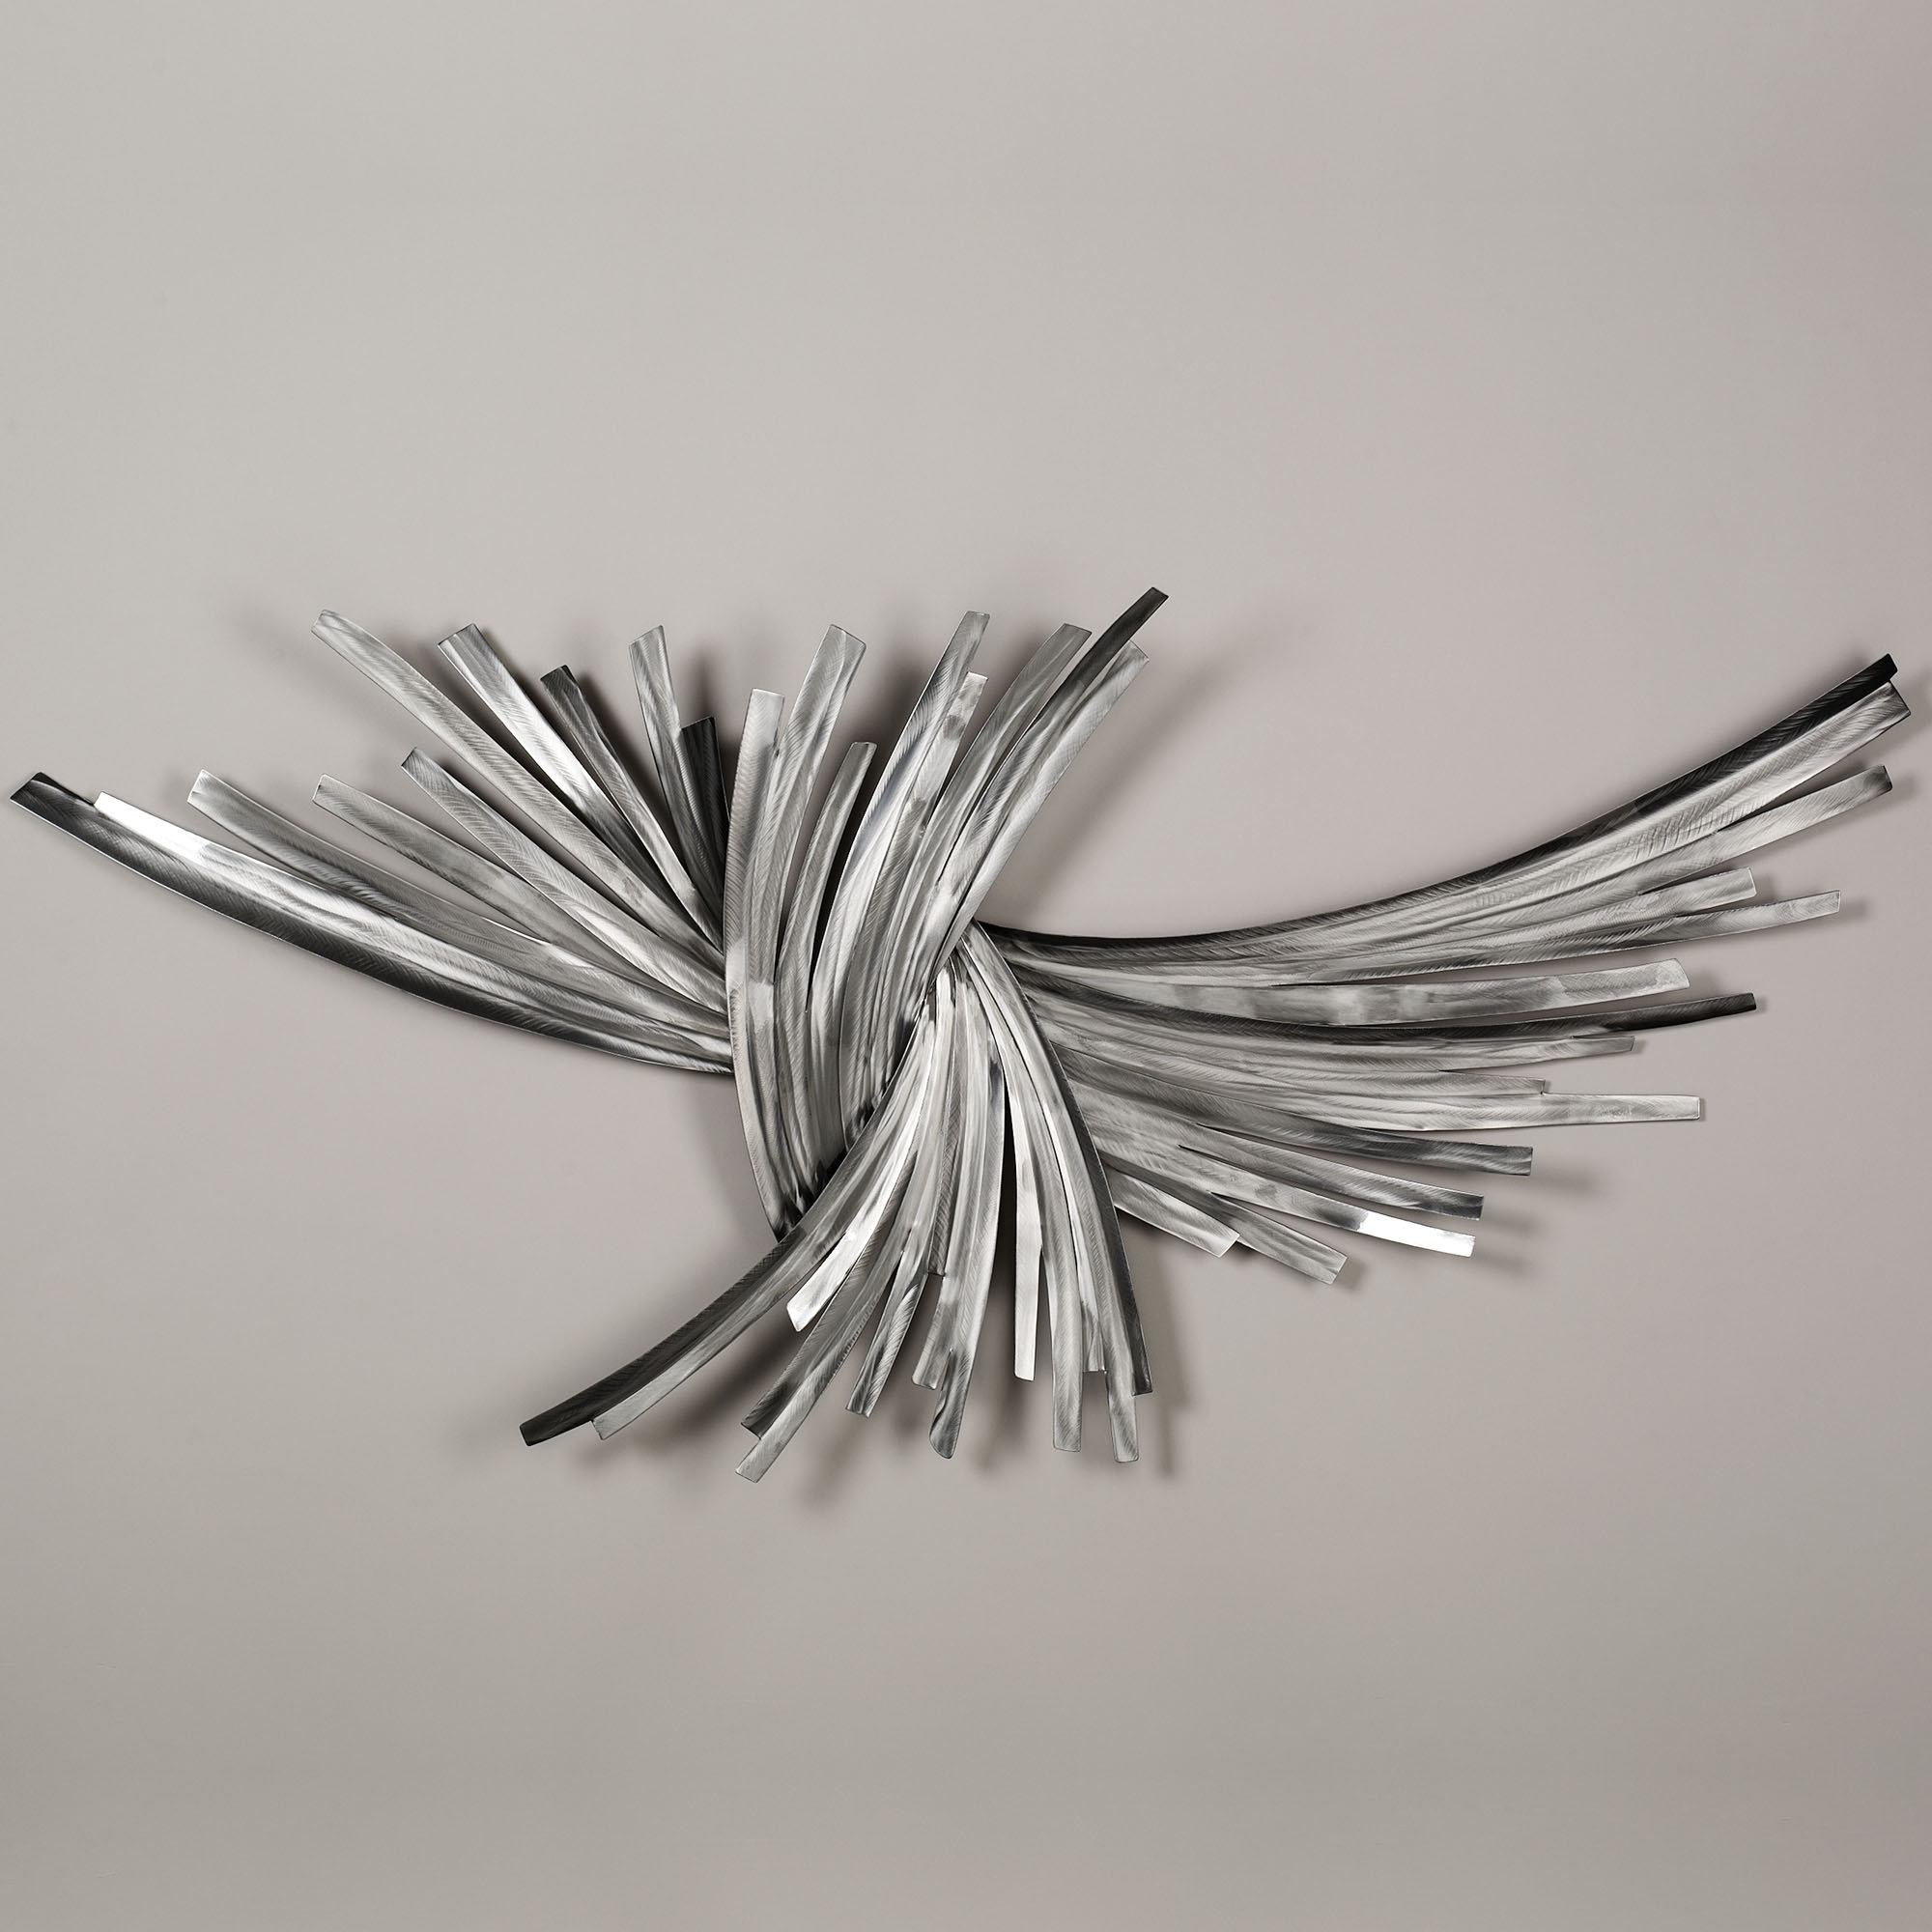 Abstract Metal Sculpture Wall Art Within Fashionable Infinity Silver Metal Wall Sculpture (View 5 of 15)